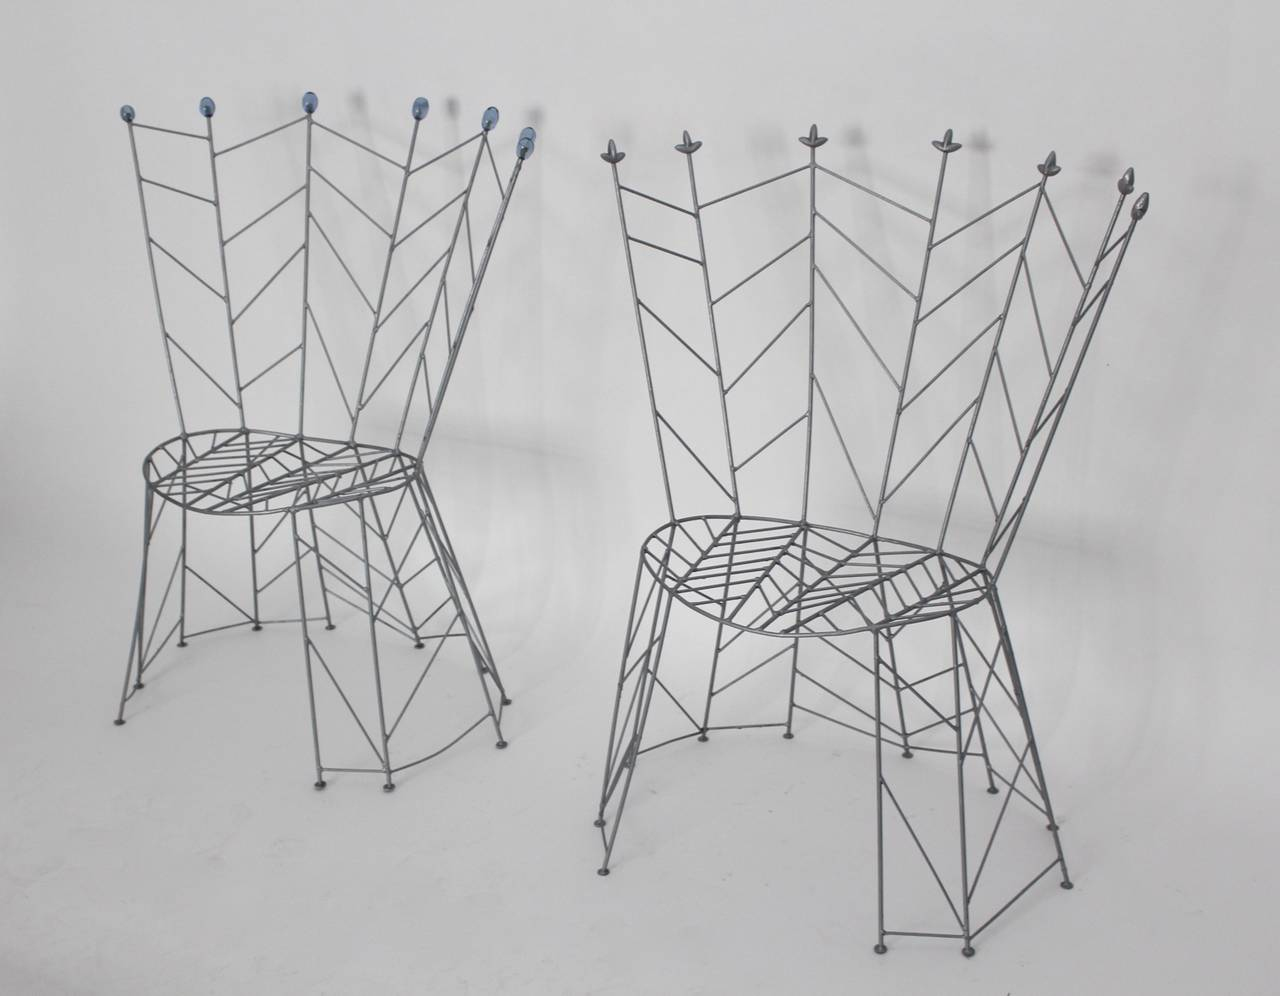 Lacquered Modernist Metal Vintage Chairs Pupeny by Bohuslav Horak 1988 Czech Republic For Sale